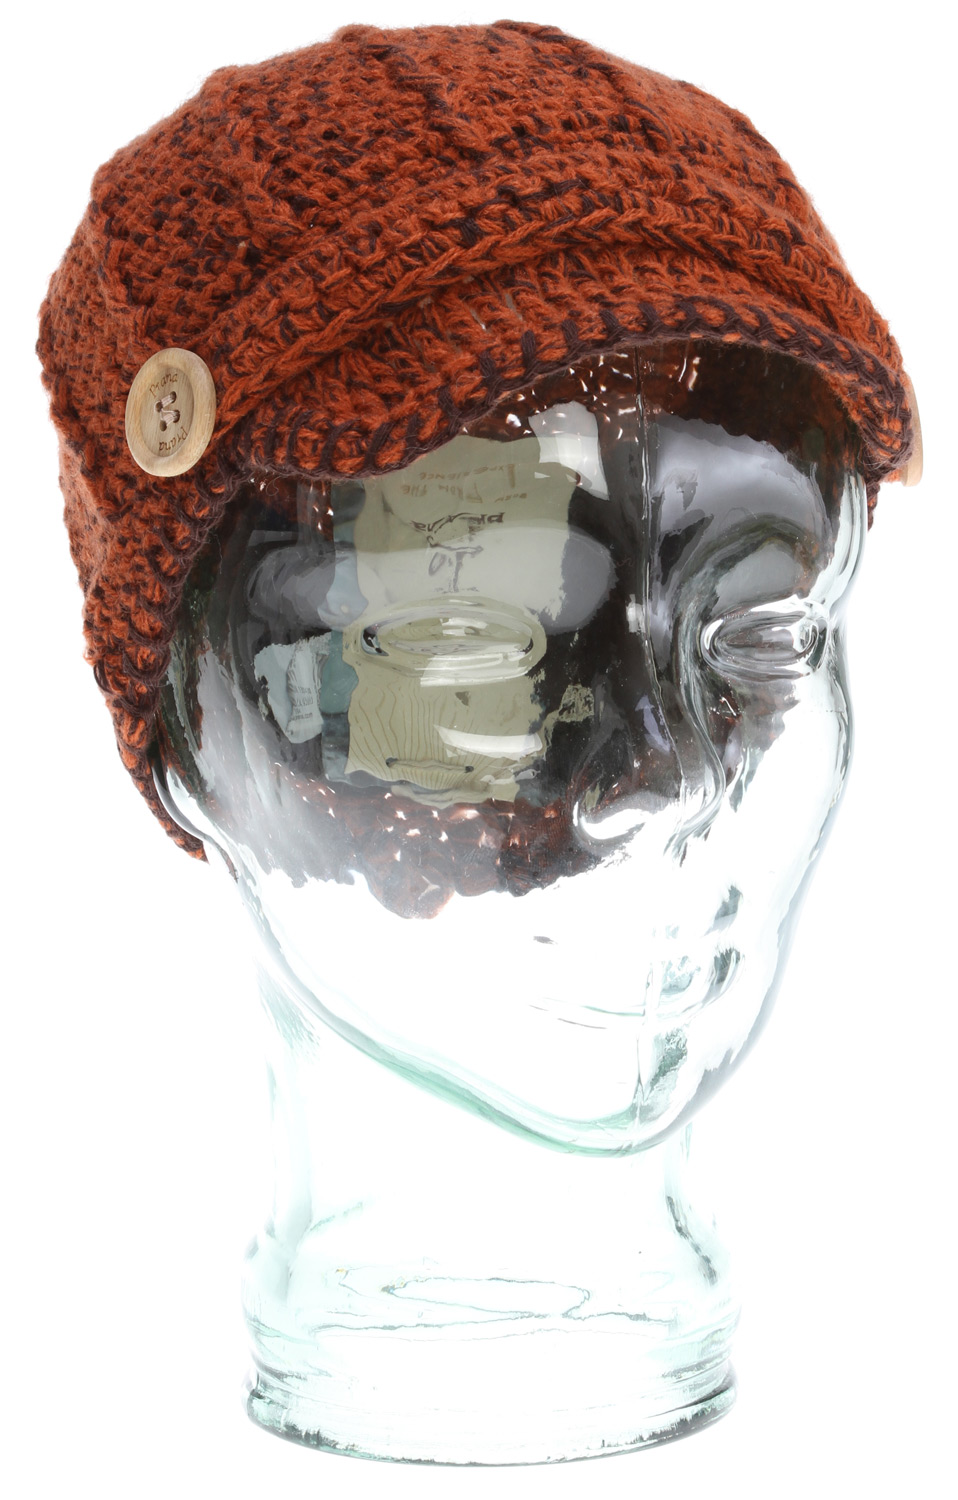 50% organic cotton adds a sustainable feel-good to an already excellent beanie. Icing on the cake for a warm, soft, detailed visor beanie.Fabric: 50% Organic Cotton, 50% AcrylicKnit visor beanieDecorative yarn detailFleece inner bandSkully Fit - $19.95